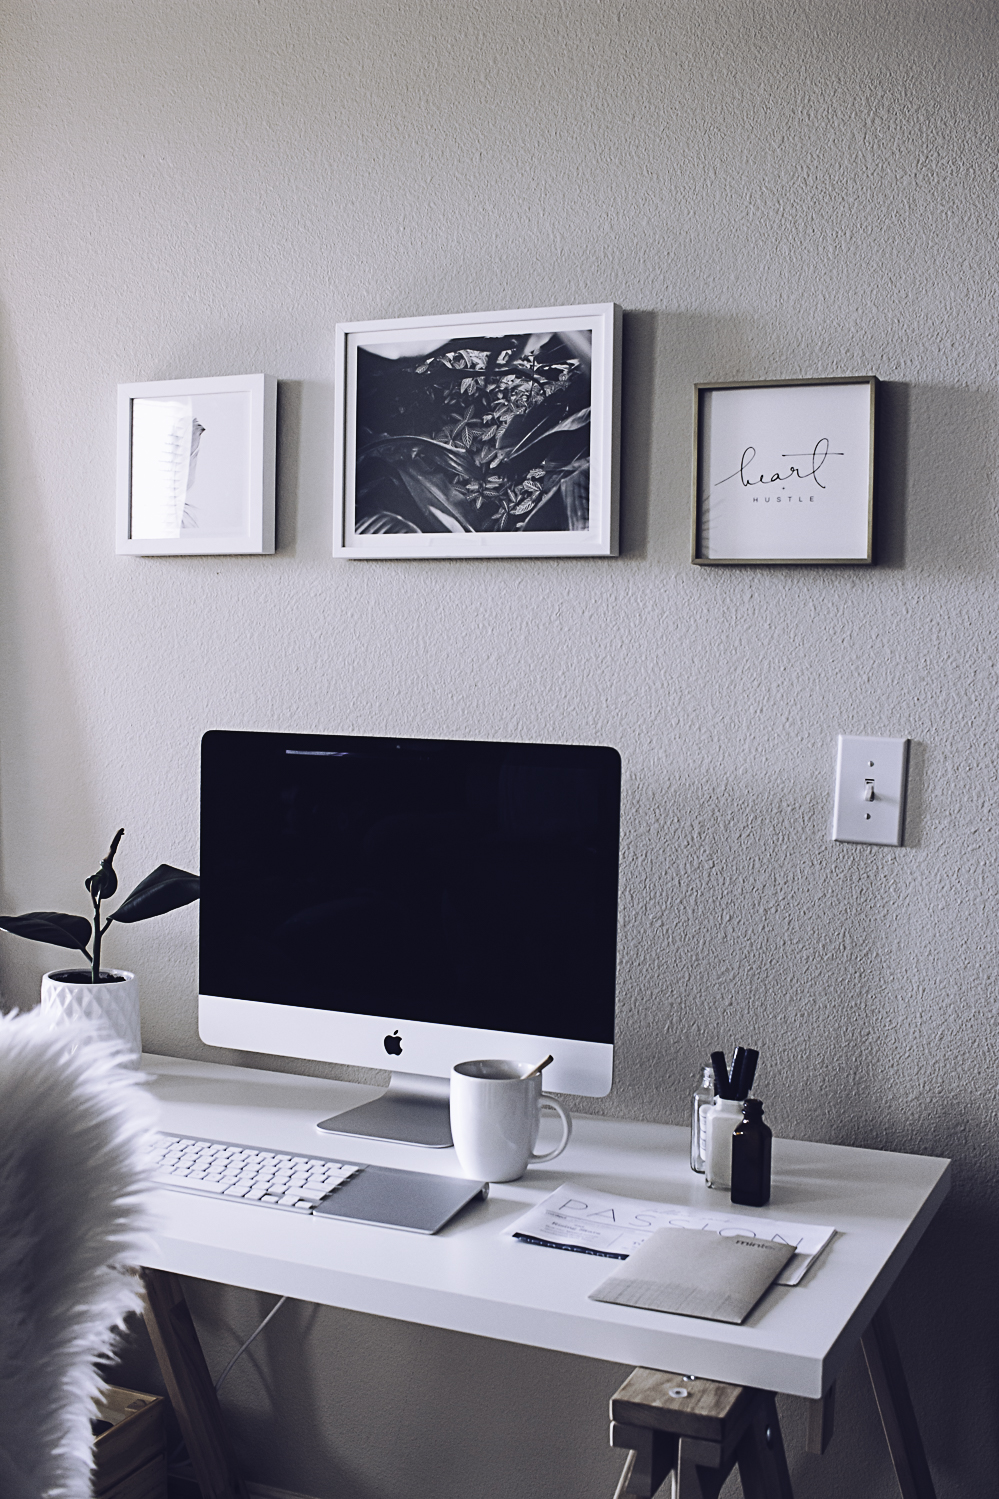 HelloLovelyLiving.com | Minimal Home Office + Minted Custom Art Prints